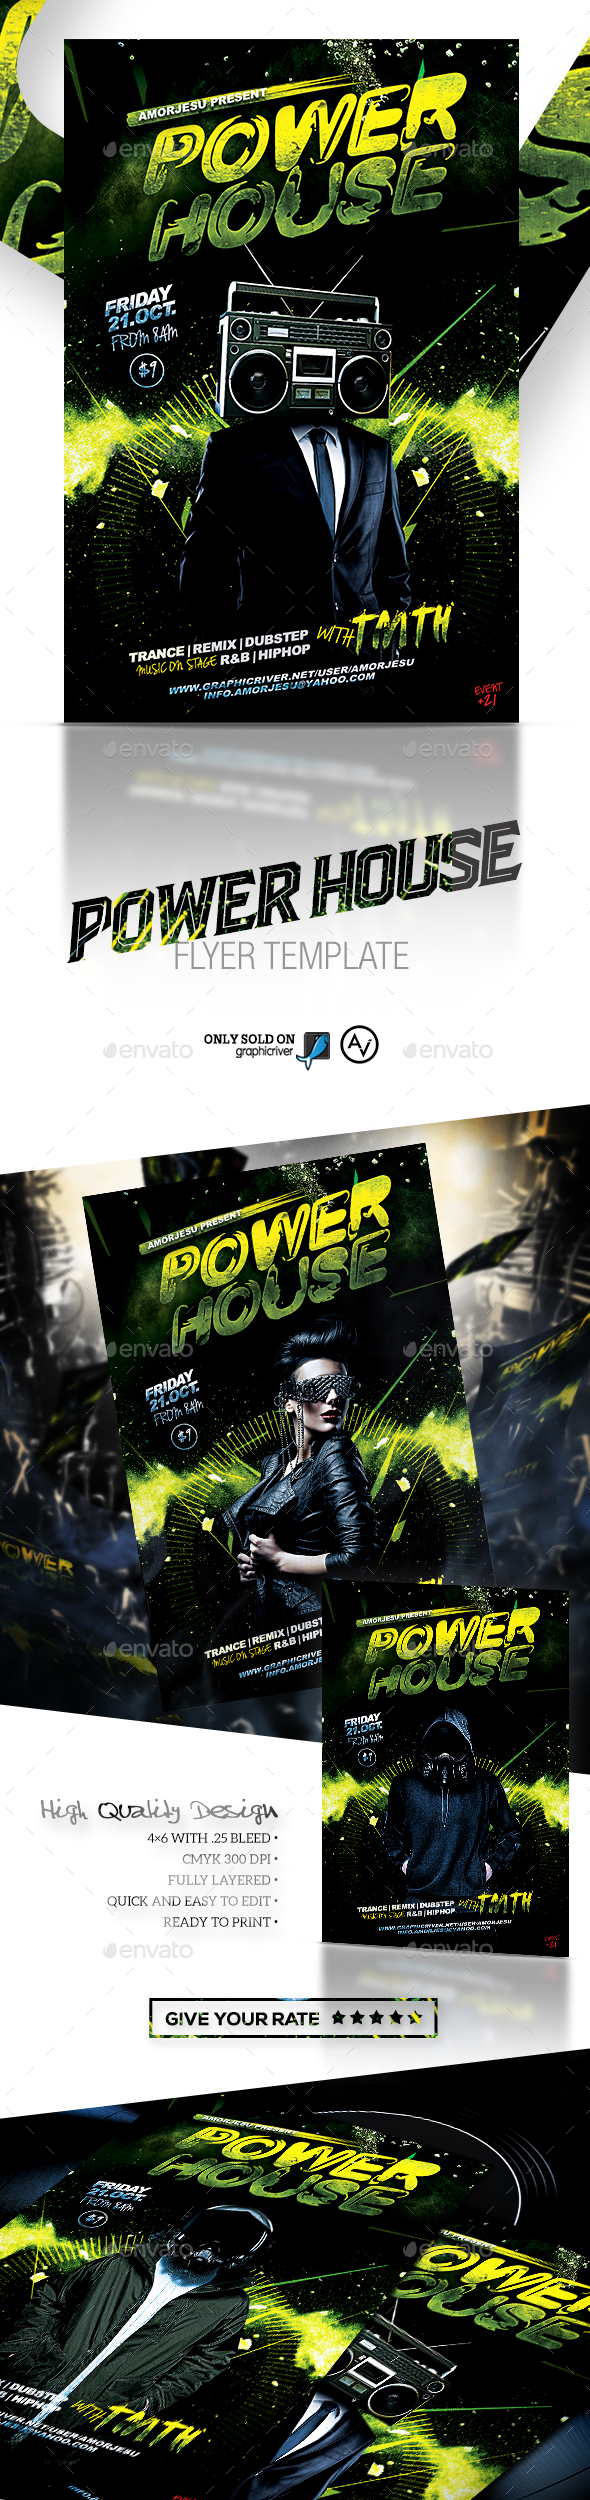 Power House Flyer Template - Clubs & Parties Events